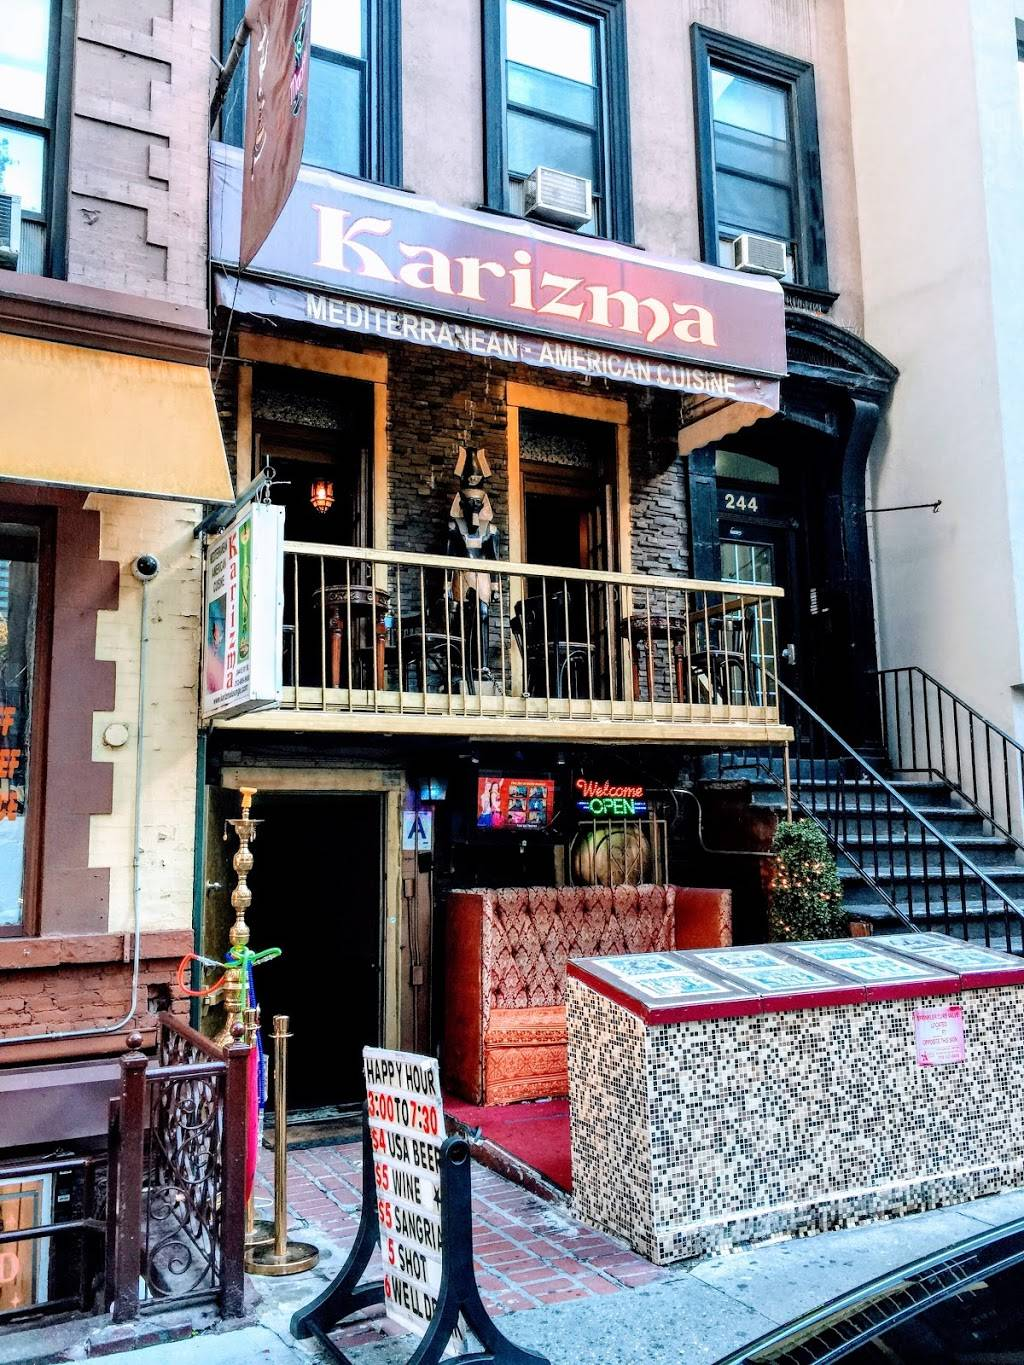 Karizma Lounge | restaurant | 244 E 51st St, New York, NY 10022, USA | 2126059988 OR +1 212-605-9988